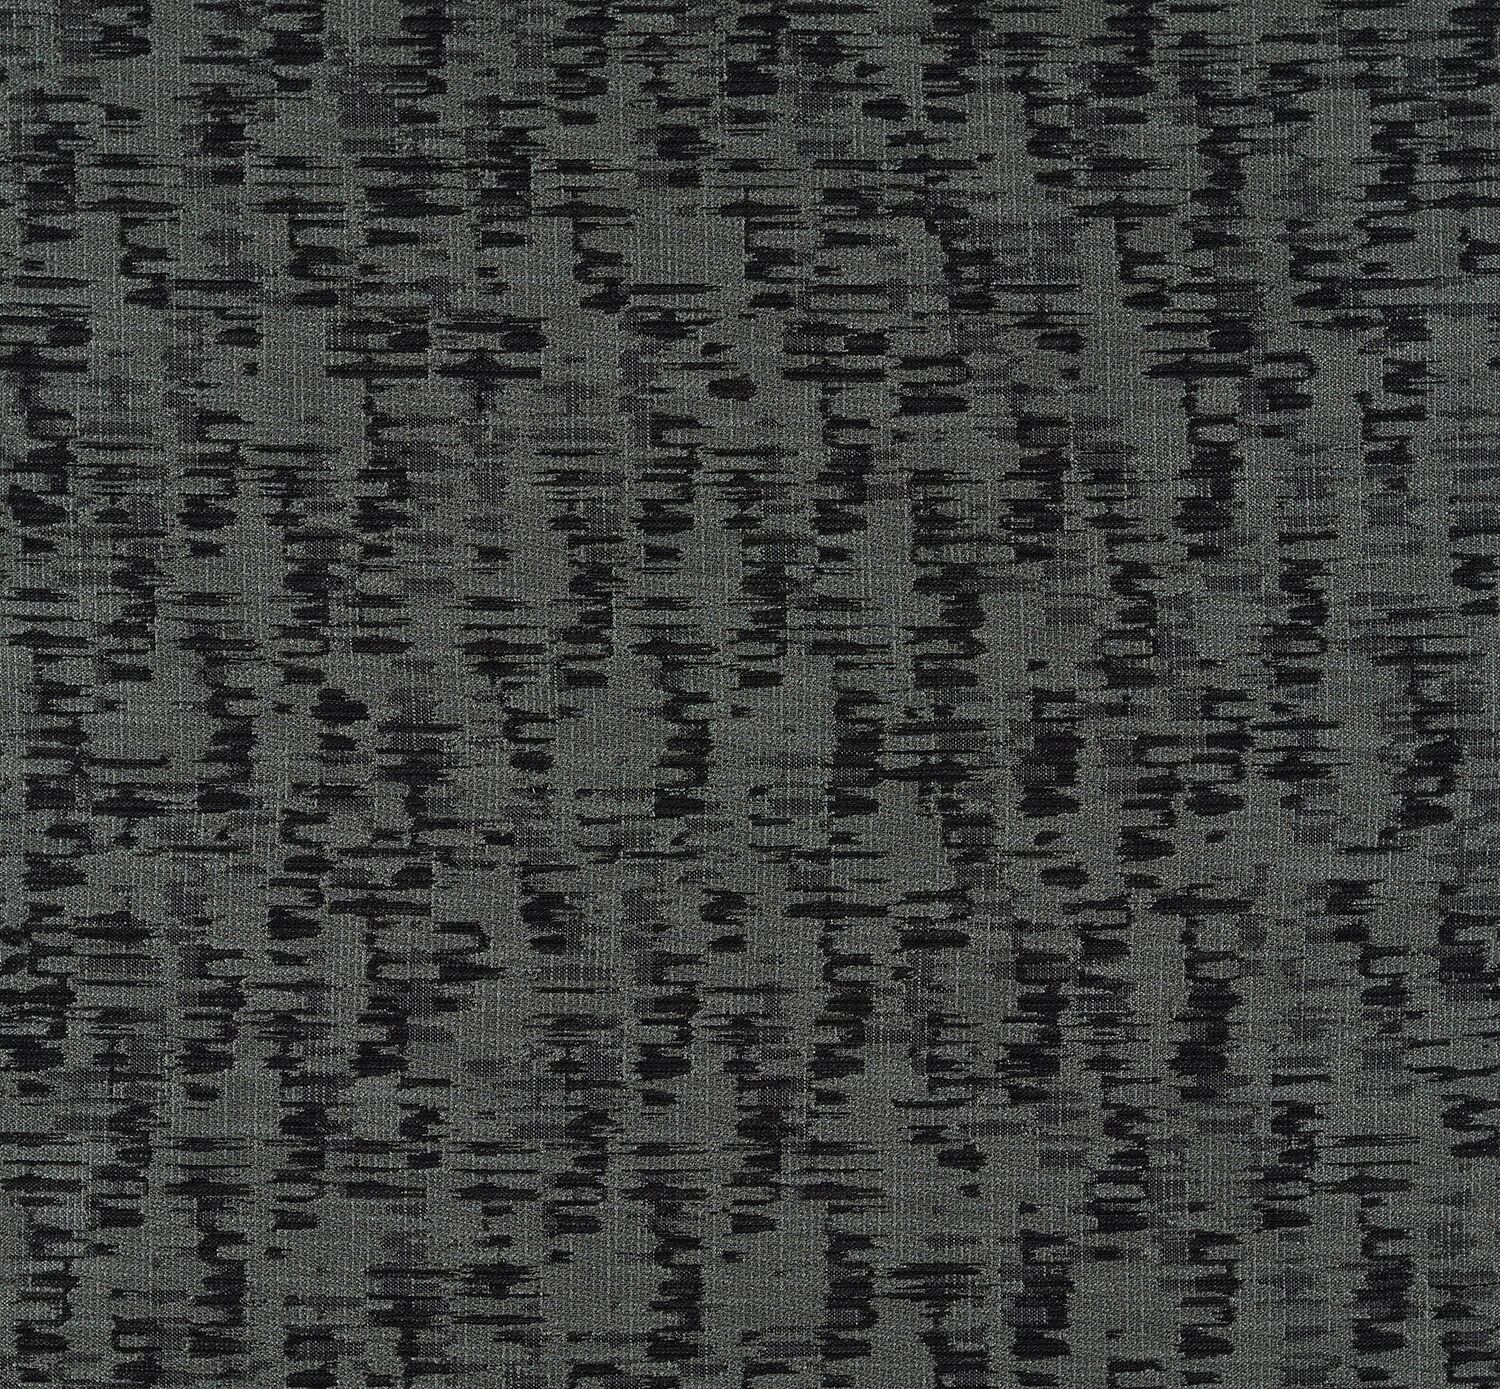 Wavefield - Brackish - 4091 - 08 Tileable Swatches